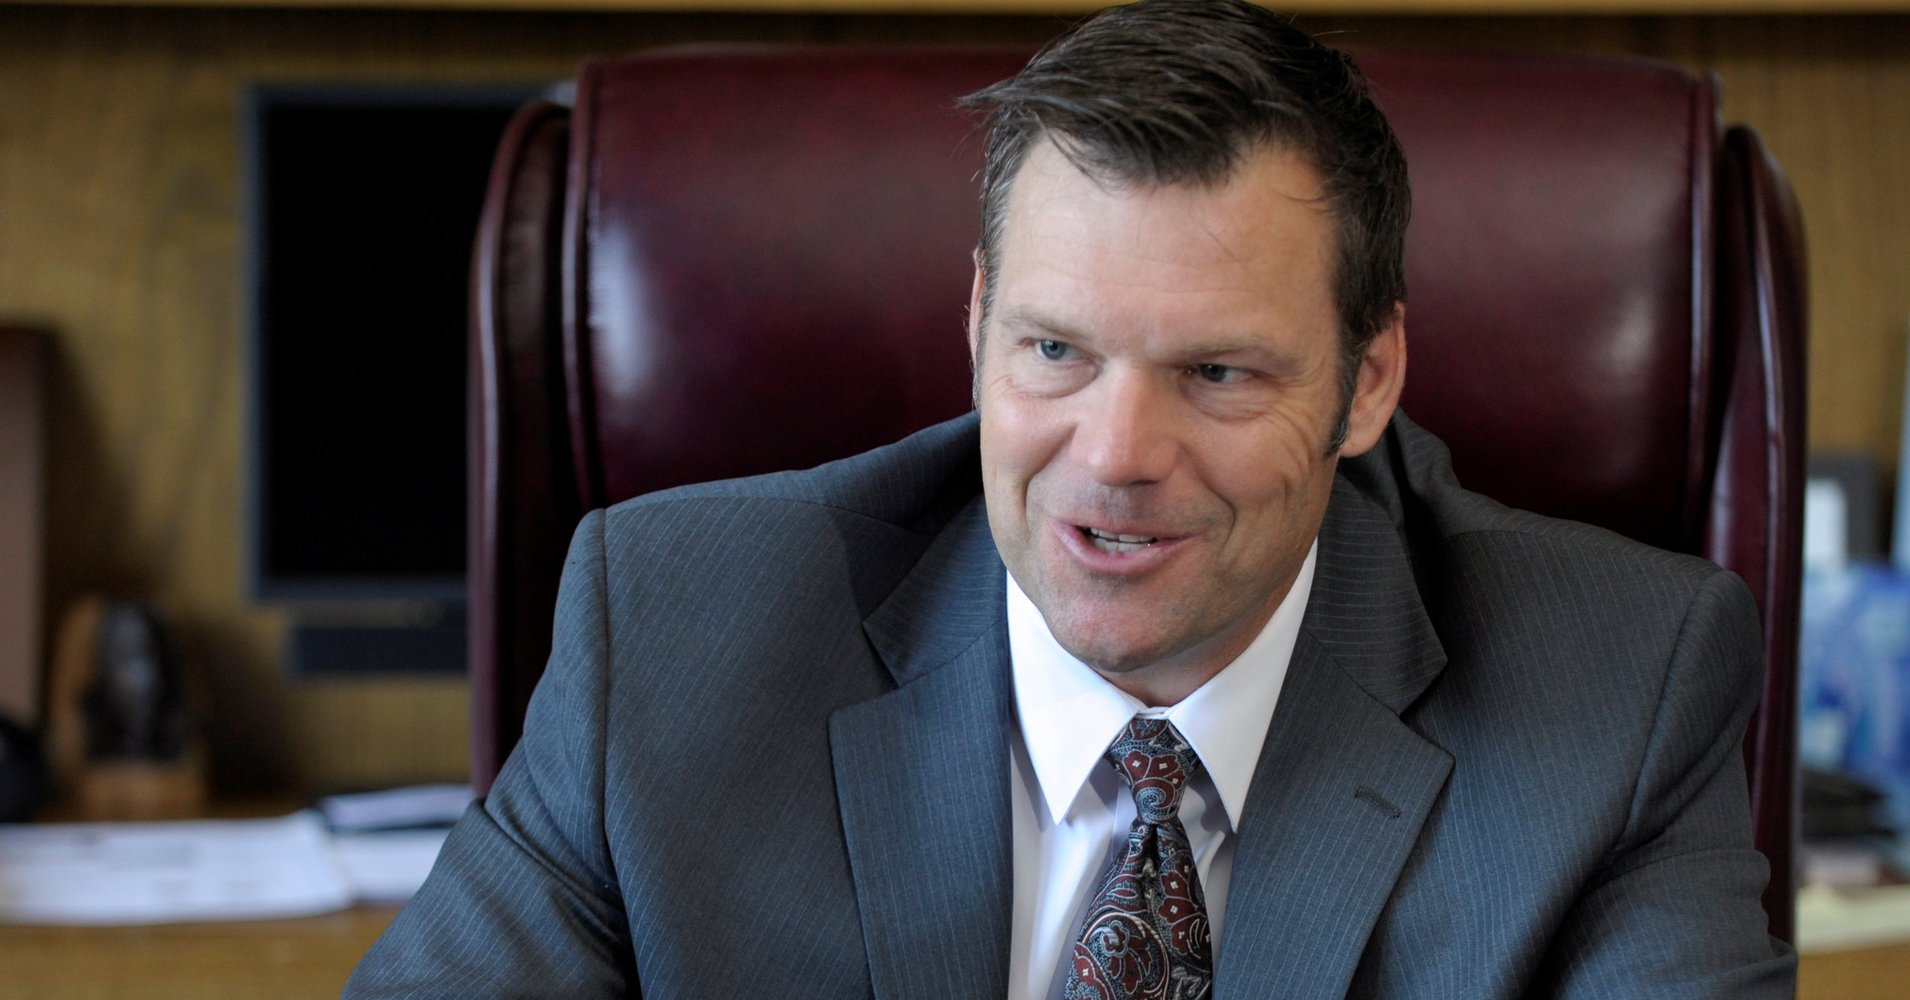 Kris Kobach is using a private email for government business and thinks it's totally fine https://t.co/qPesHDM2Bx https://t.co/gvZiSsps25